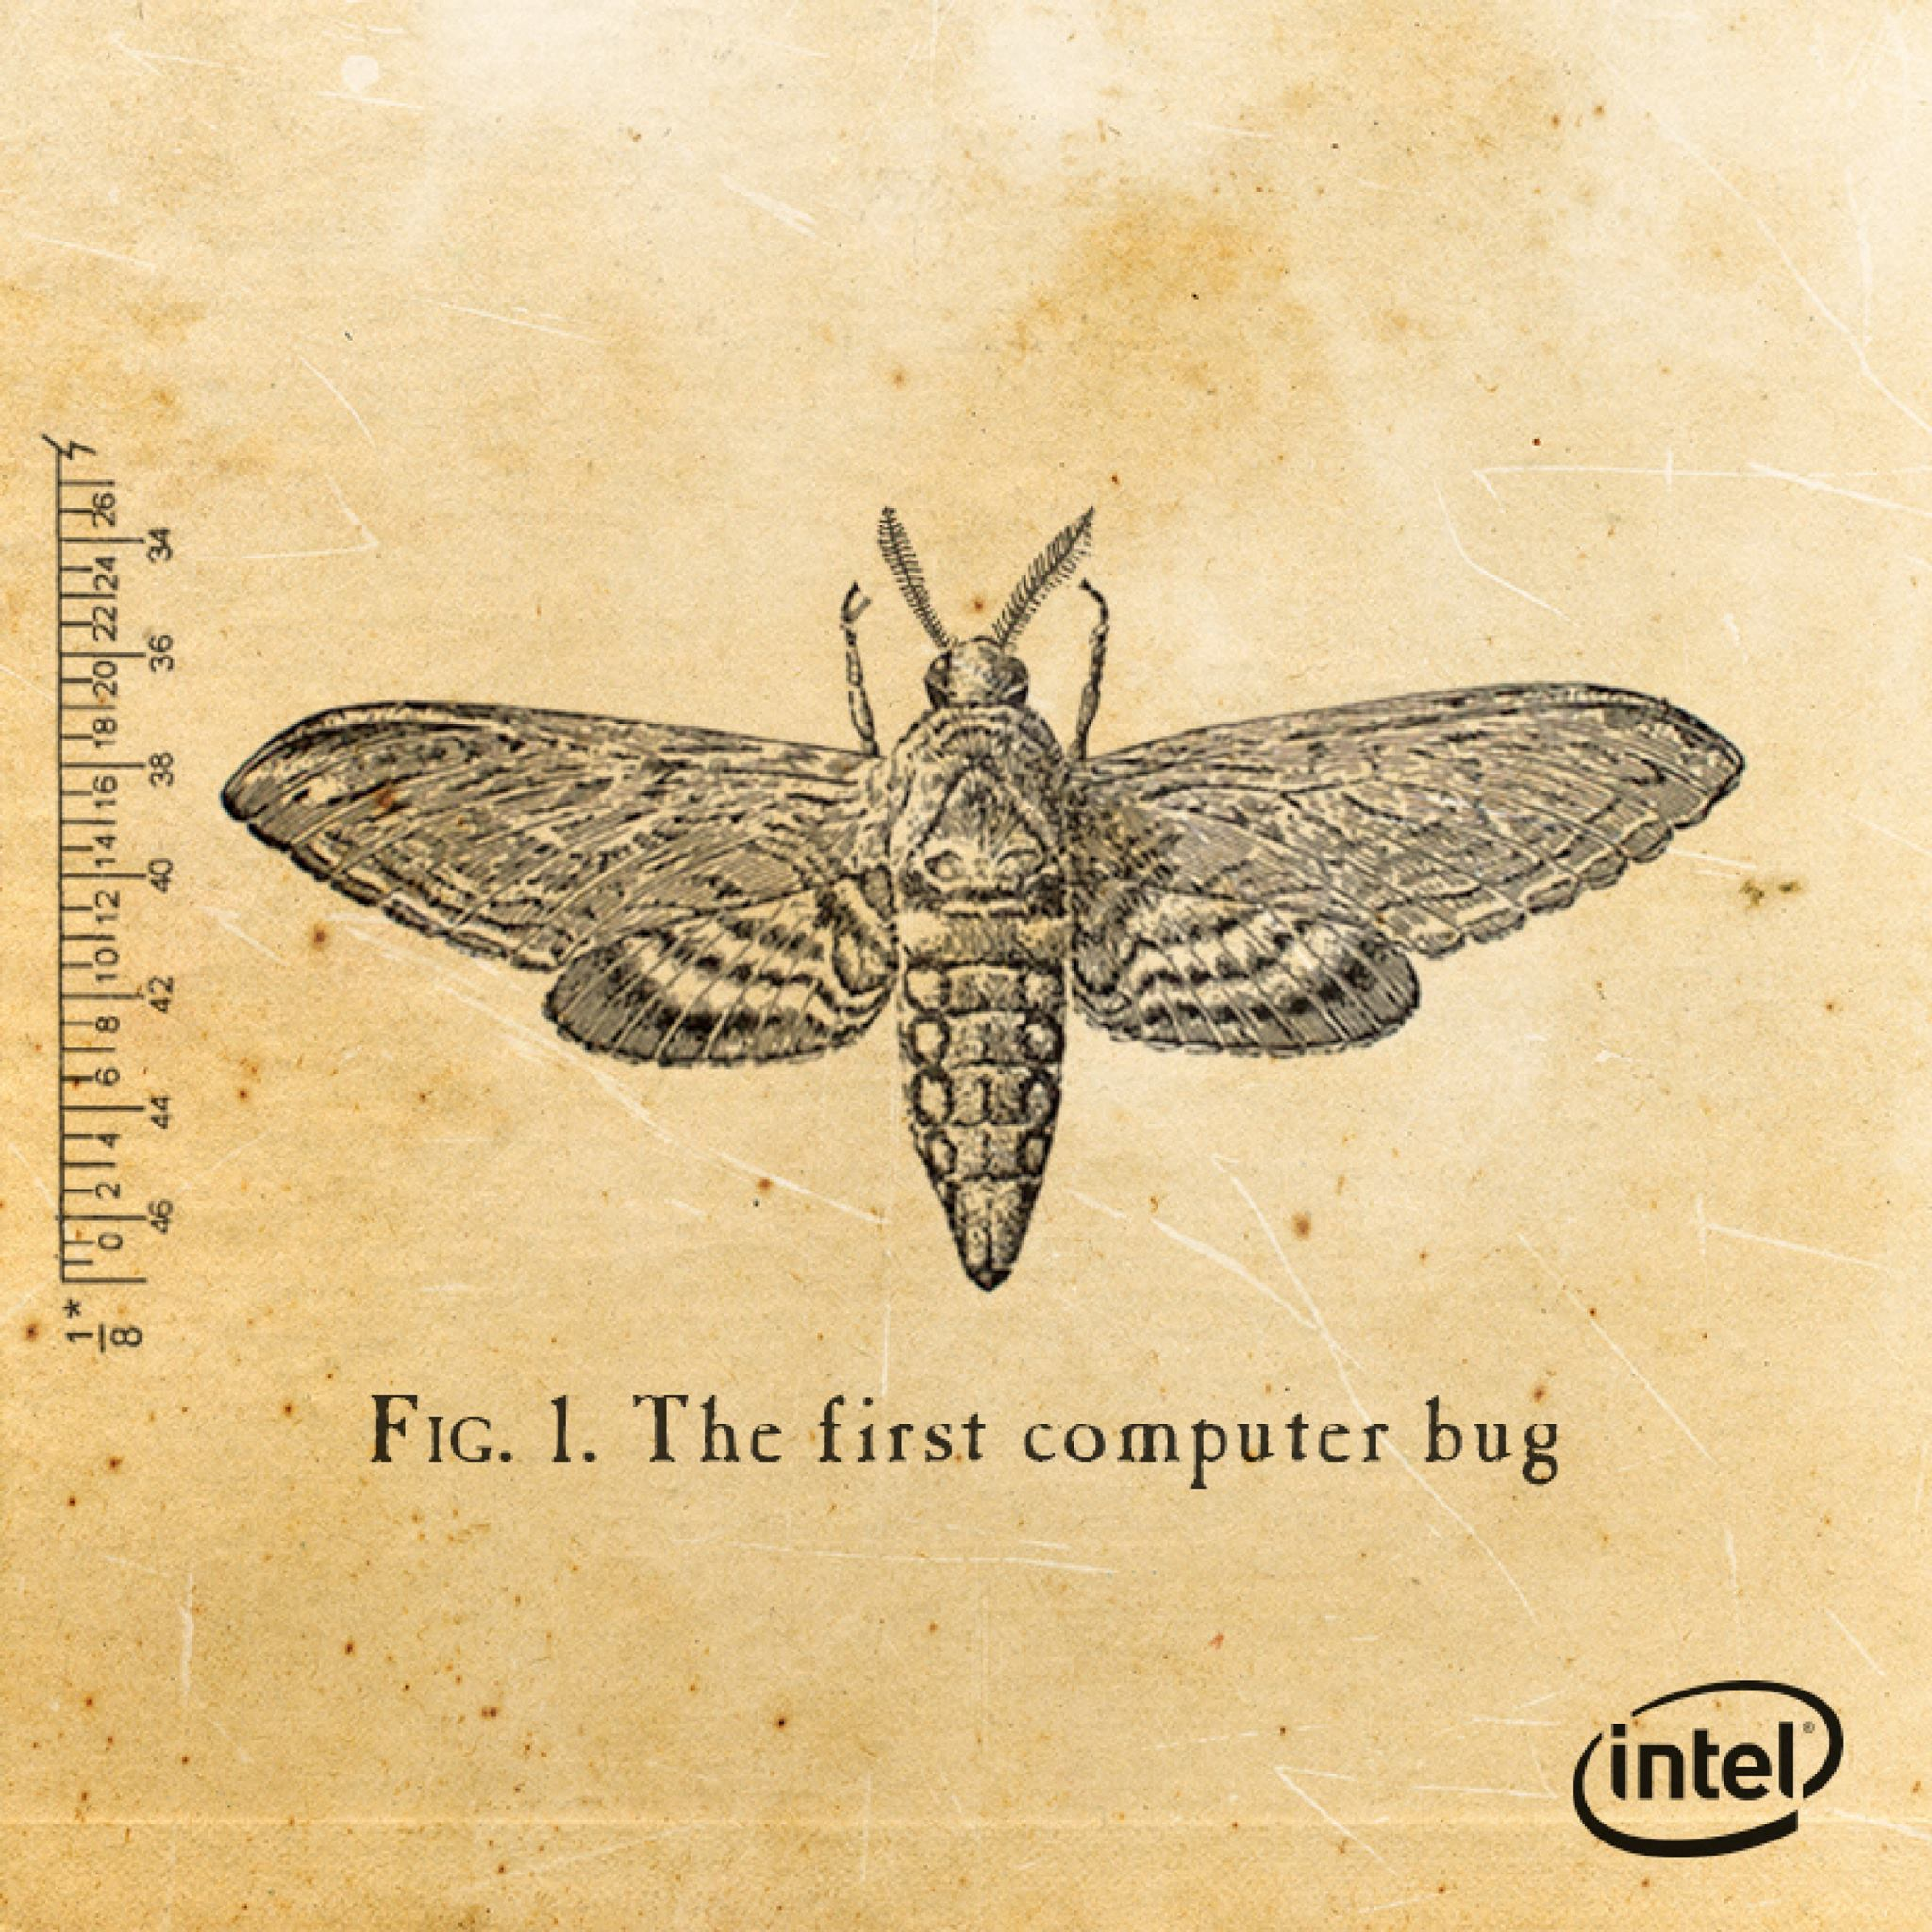 Cheaper computer - Did You Know The First Documented Computer Bug Was An Actual Moth Found